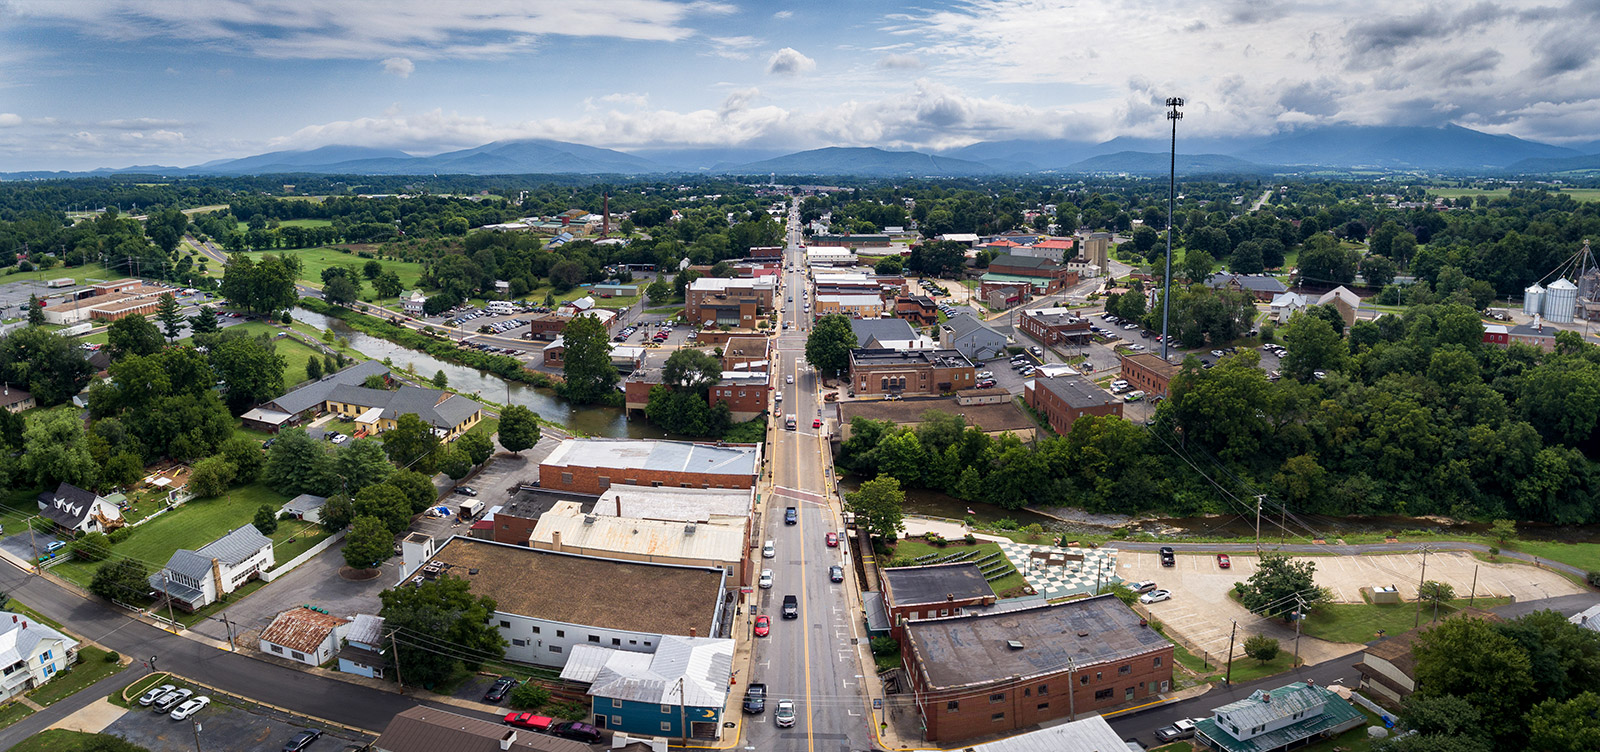 Downtown Luray, Page County